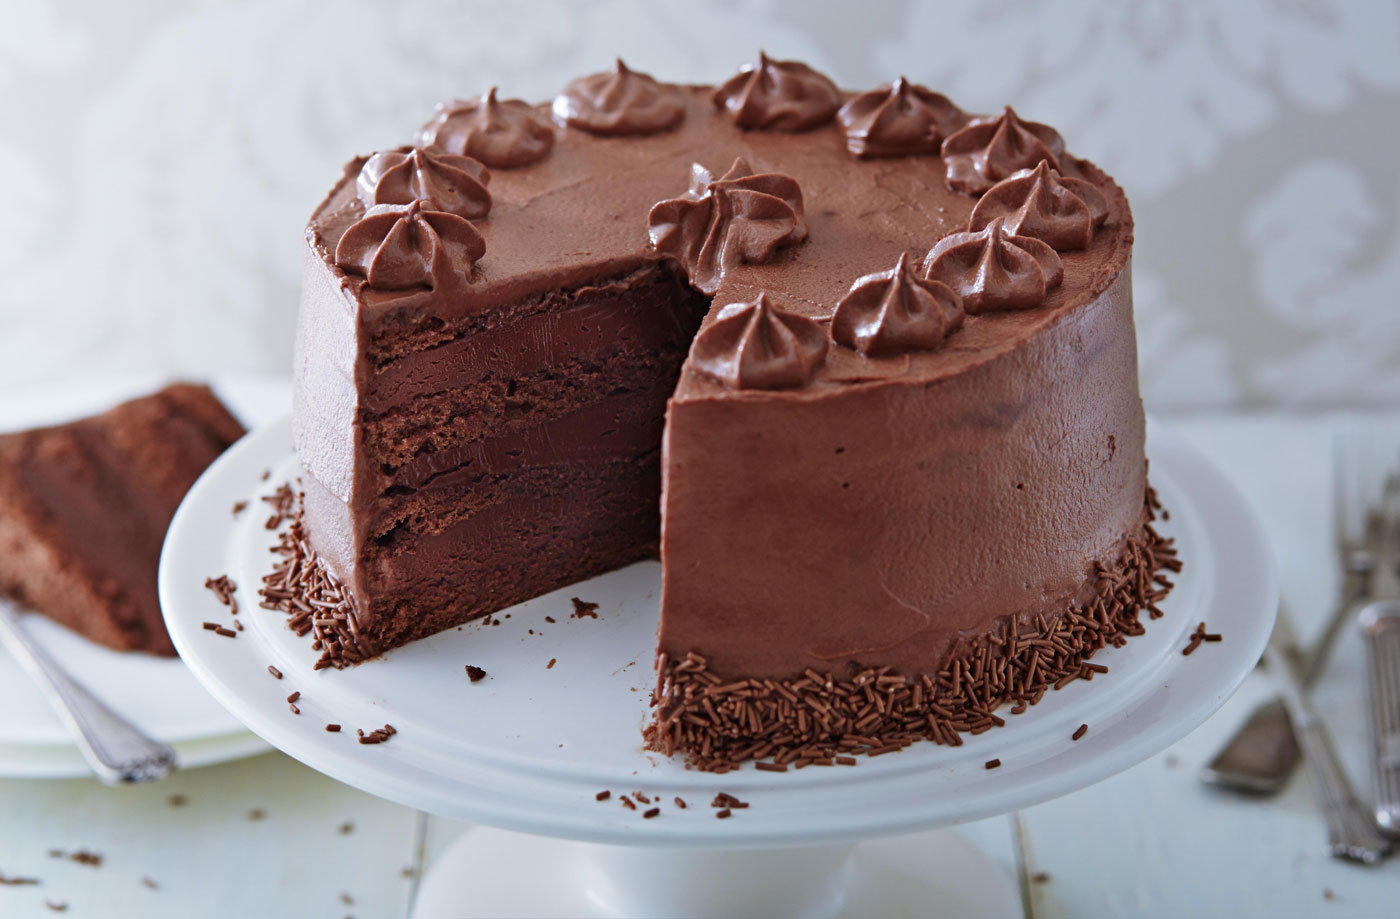 Gluten Free Chocolate Sponge Cake Recipes Uk: Triple Chocolate Cake Recipe